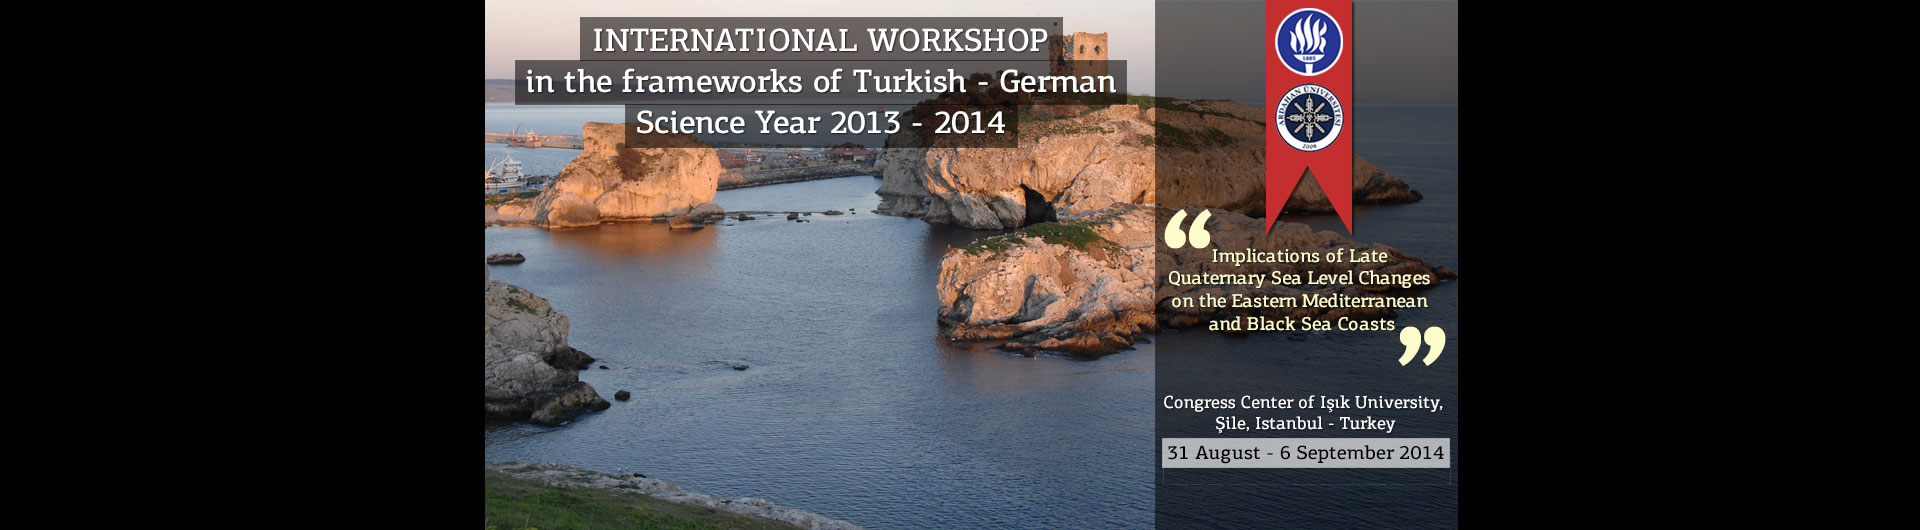 International Workshop in the frameworks of Turkish - German Science Year 2013 - 2014